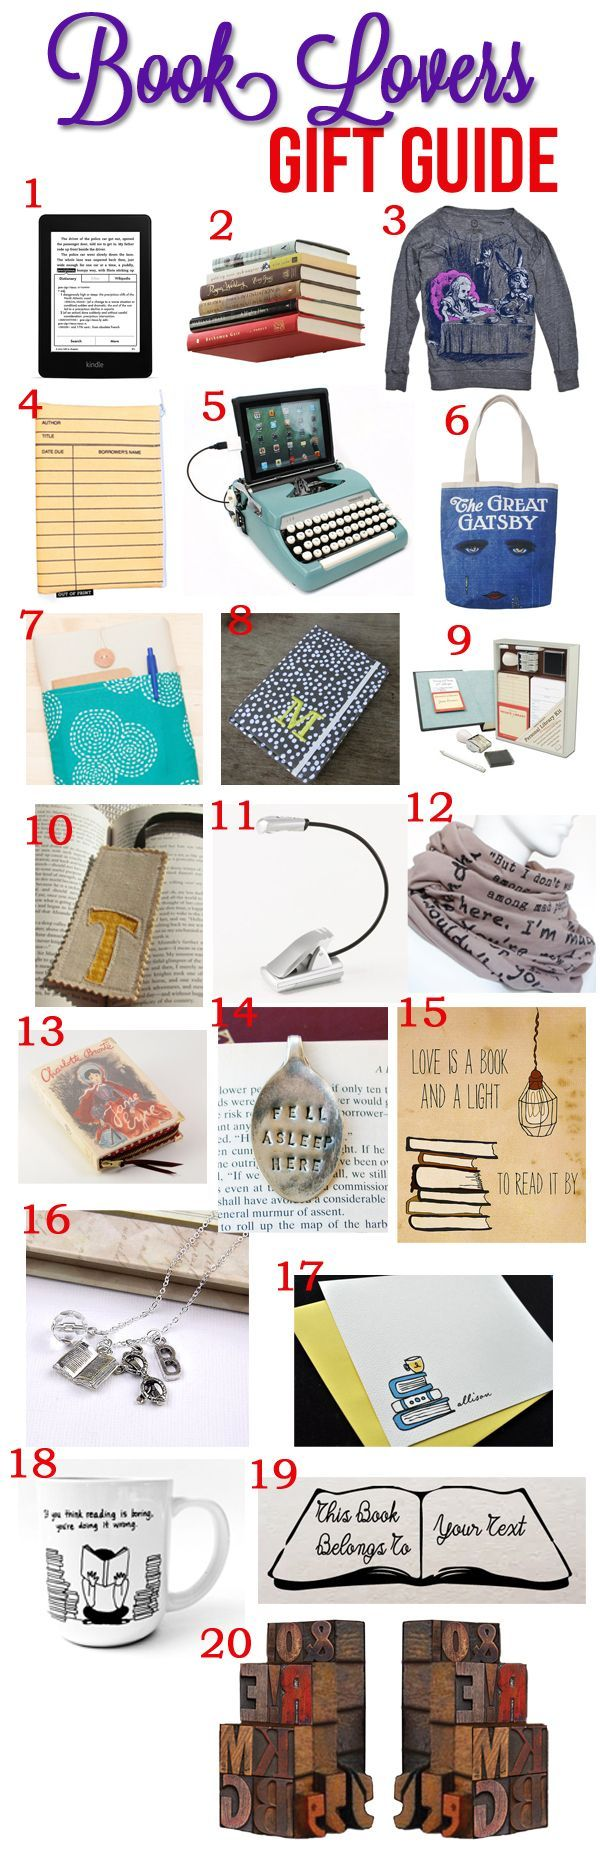 A Gift Guide for Book Lovers via pinkheelspinktruck.com